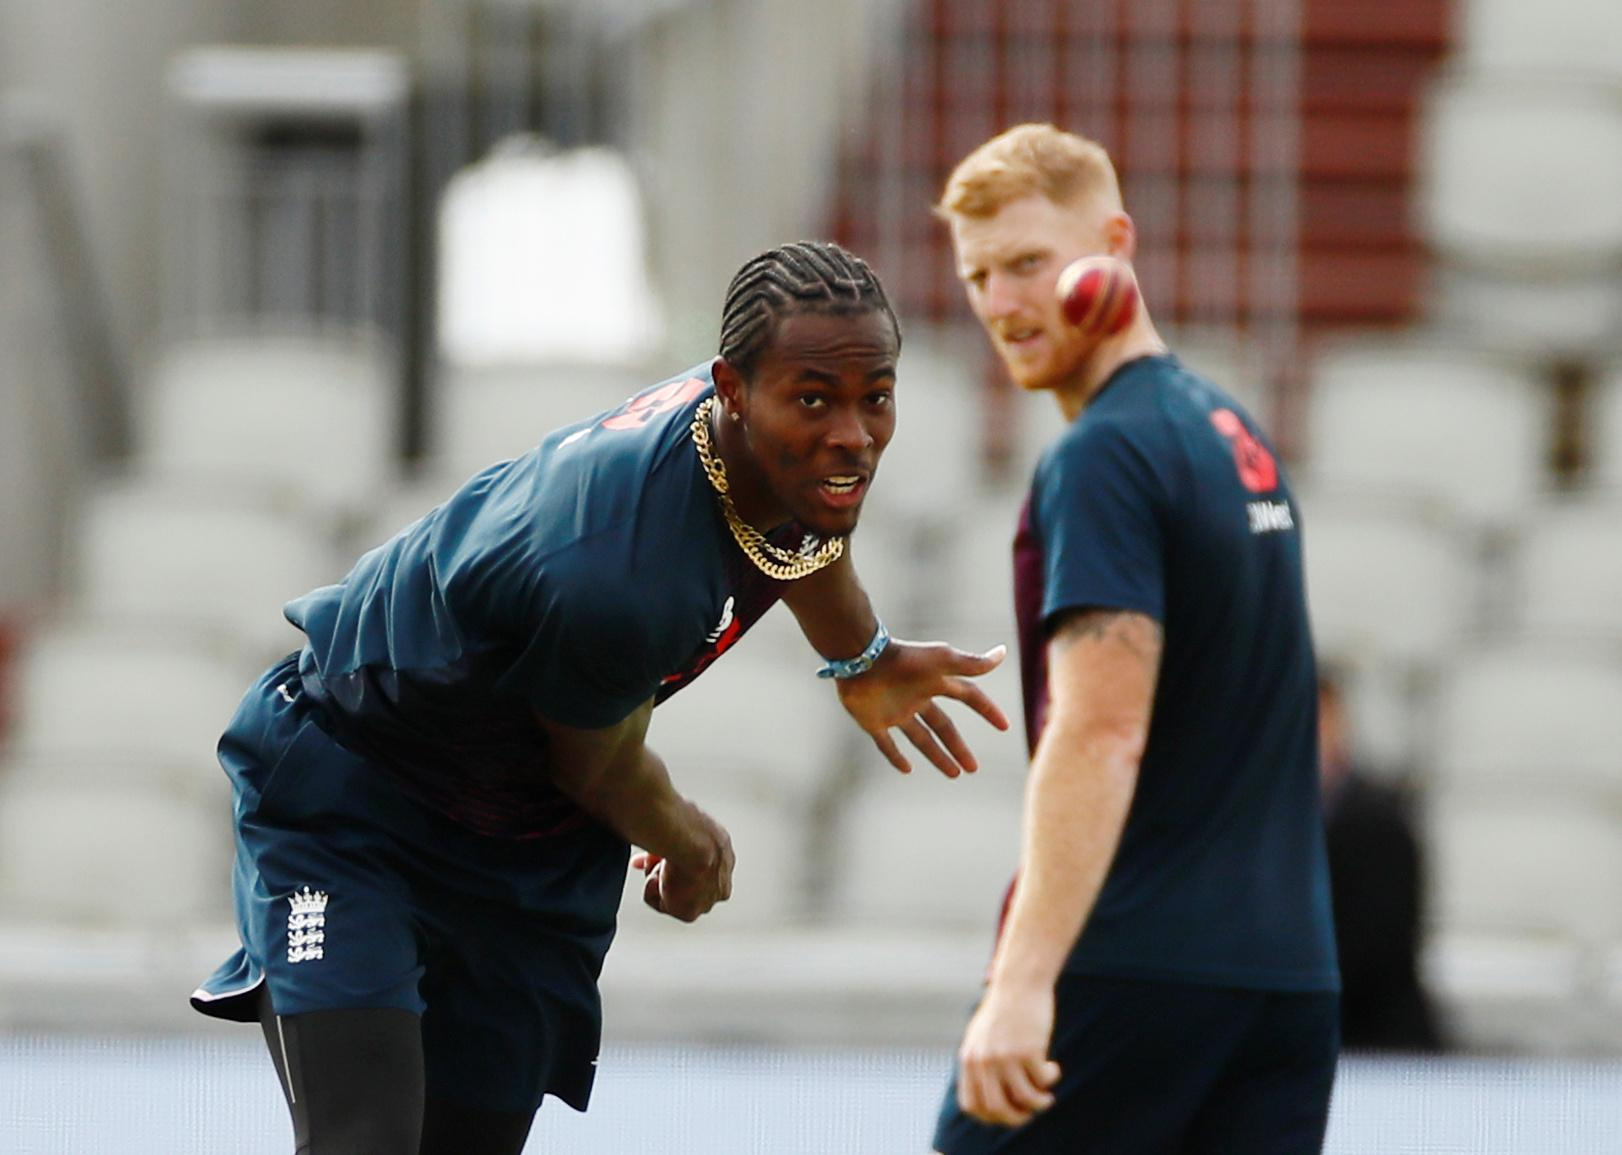 England's Archer, Stokes among players rested for South Africa ODIs